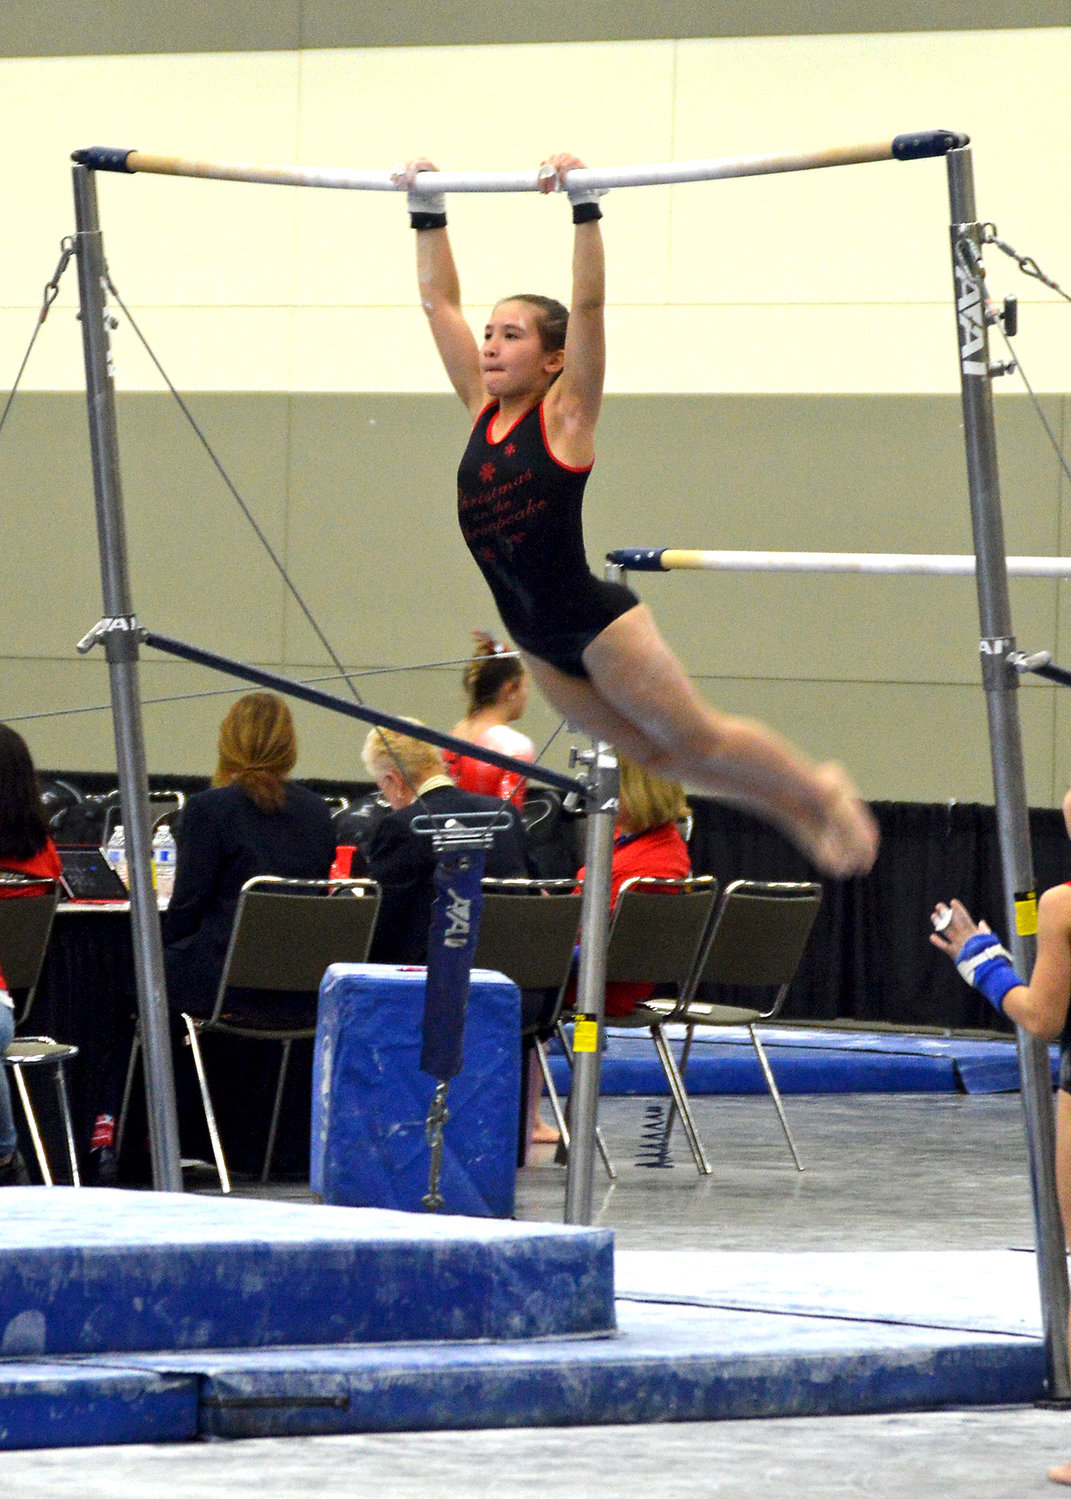 Isabella Haskell competed in bars at the annual Christmas on the Chesapeake meet in Baltimore in December. Over 2,000 gymnasts attend the meet. Haskell placed in the top seven in bars, beam and floor exercise.